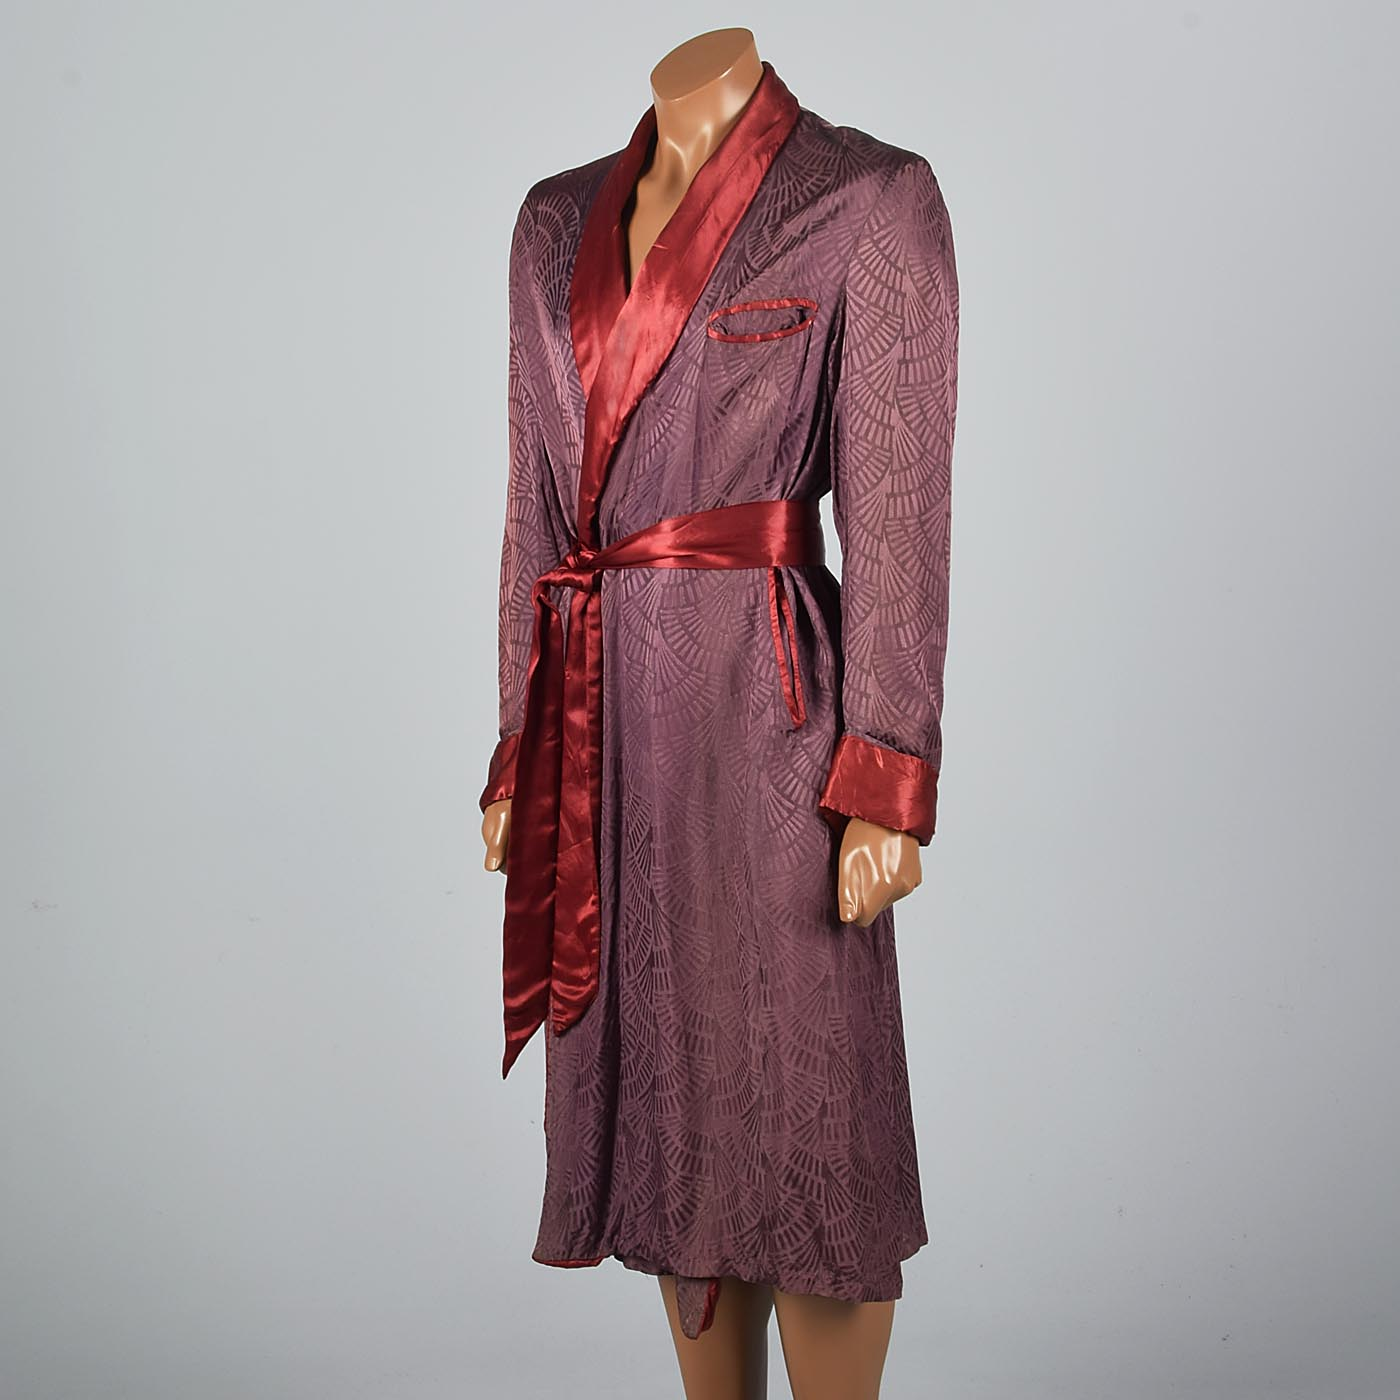 1940s Mens Rayon Robe with Art Deco Pattern